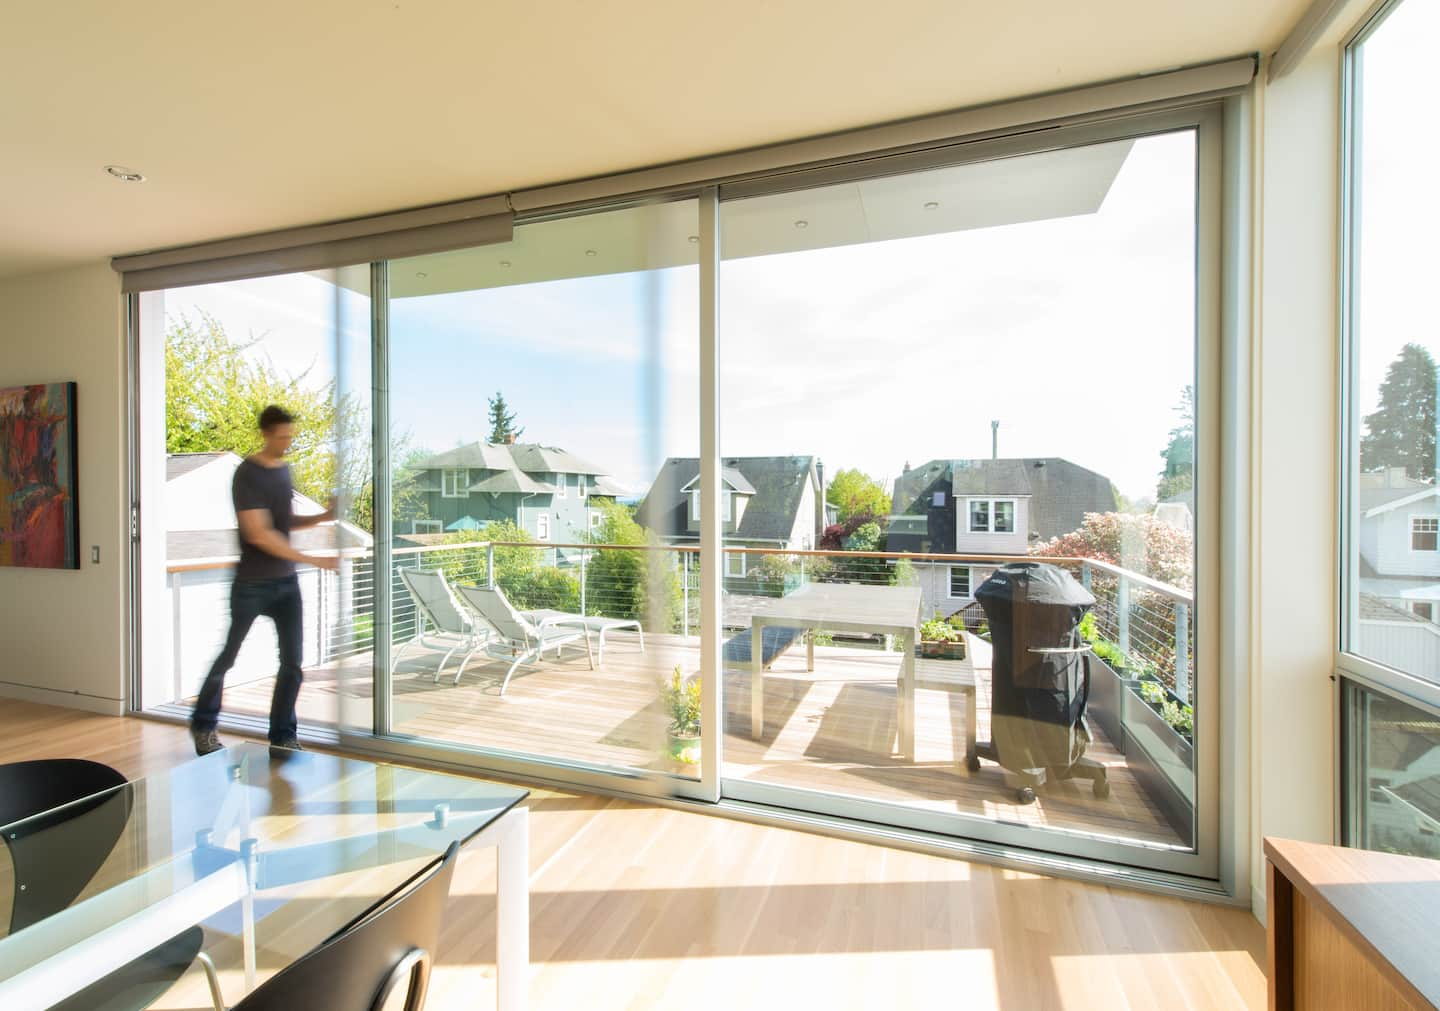 100 Reliabilt Sliding Patio Doors Reviews Local Reliabilt D 100